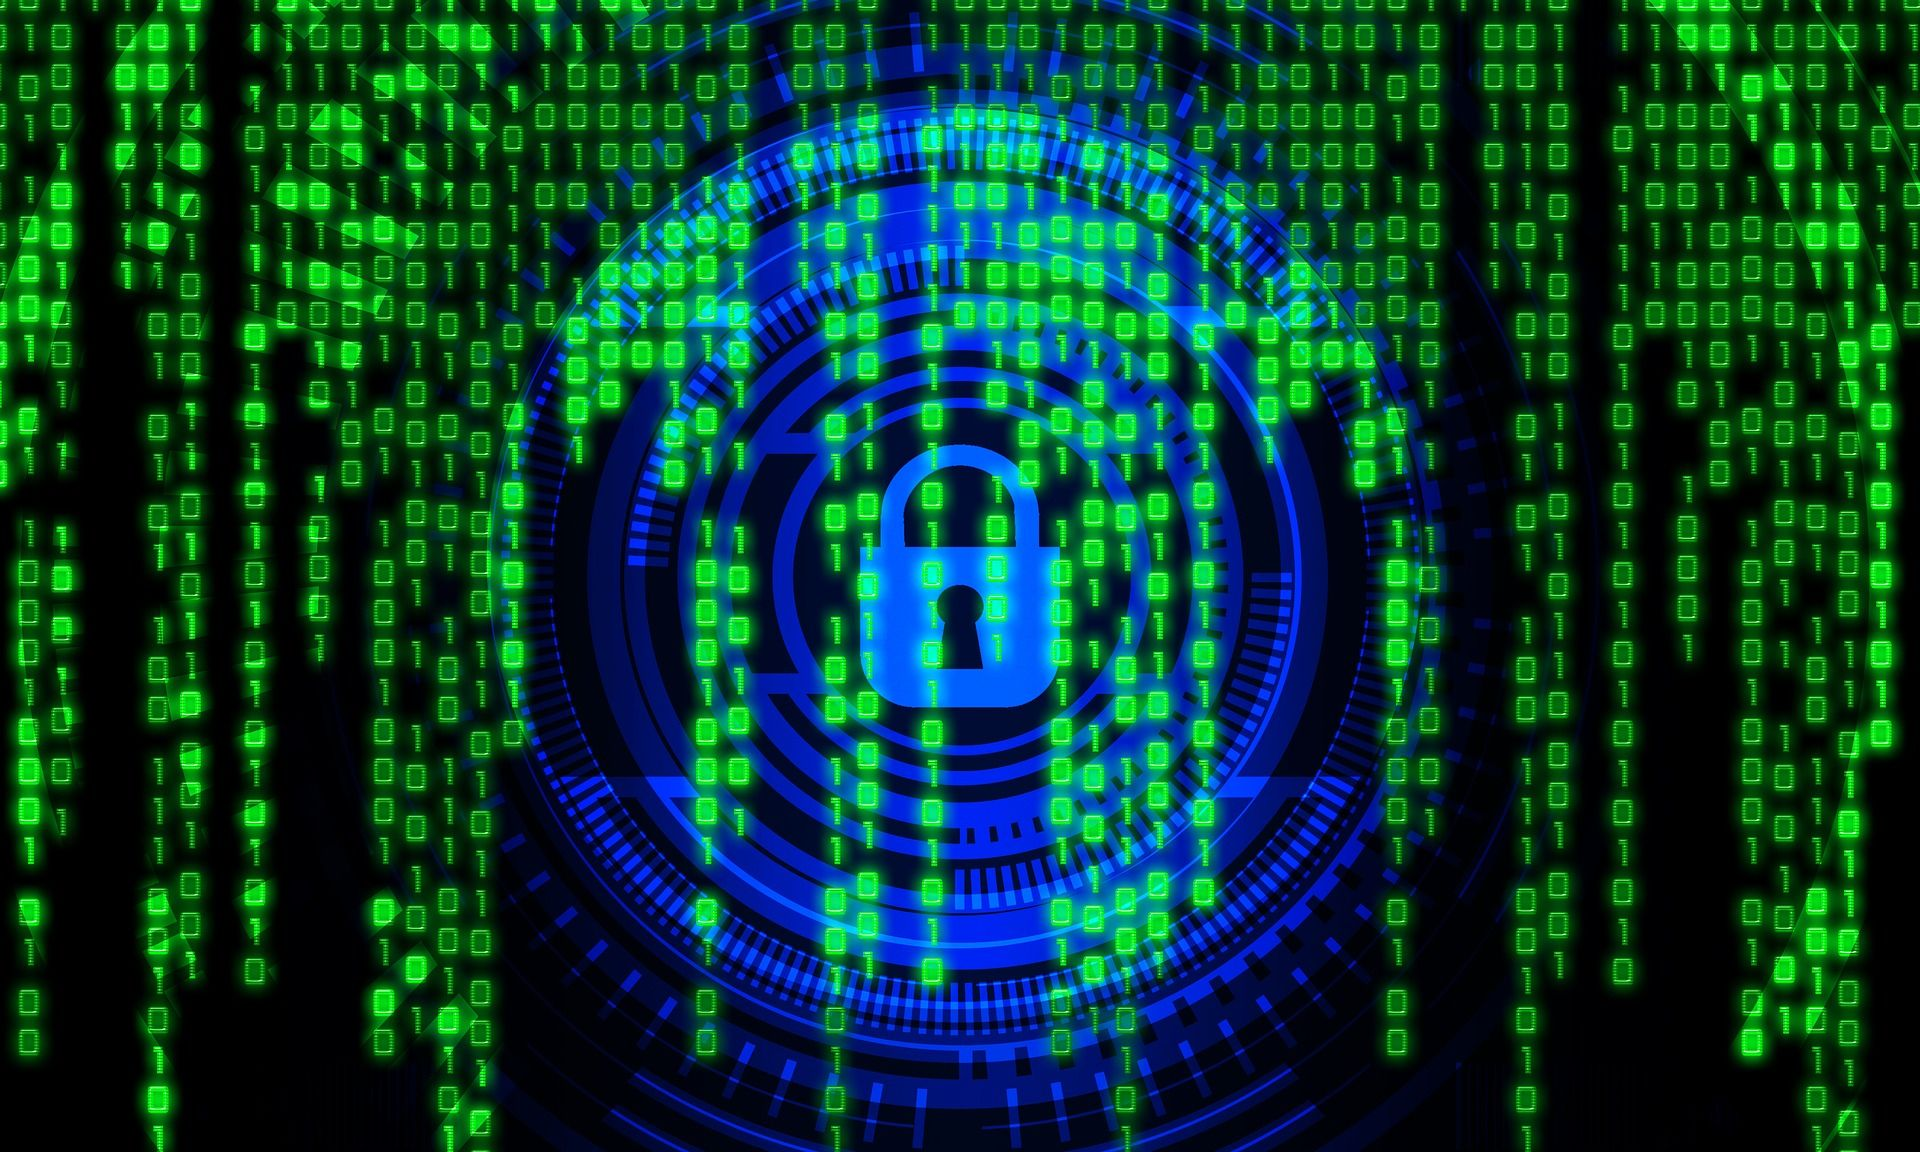 /what-are-the-cybersecurity-risks-associated-with-personal-devices-ws5r35yq feature image